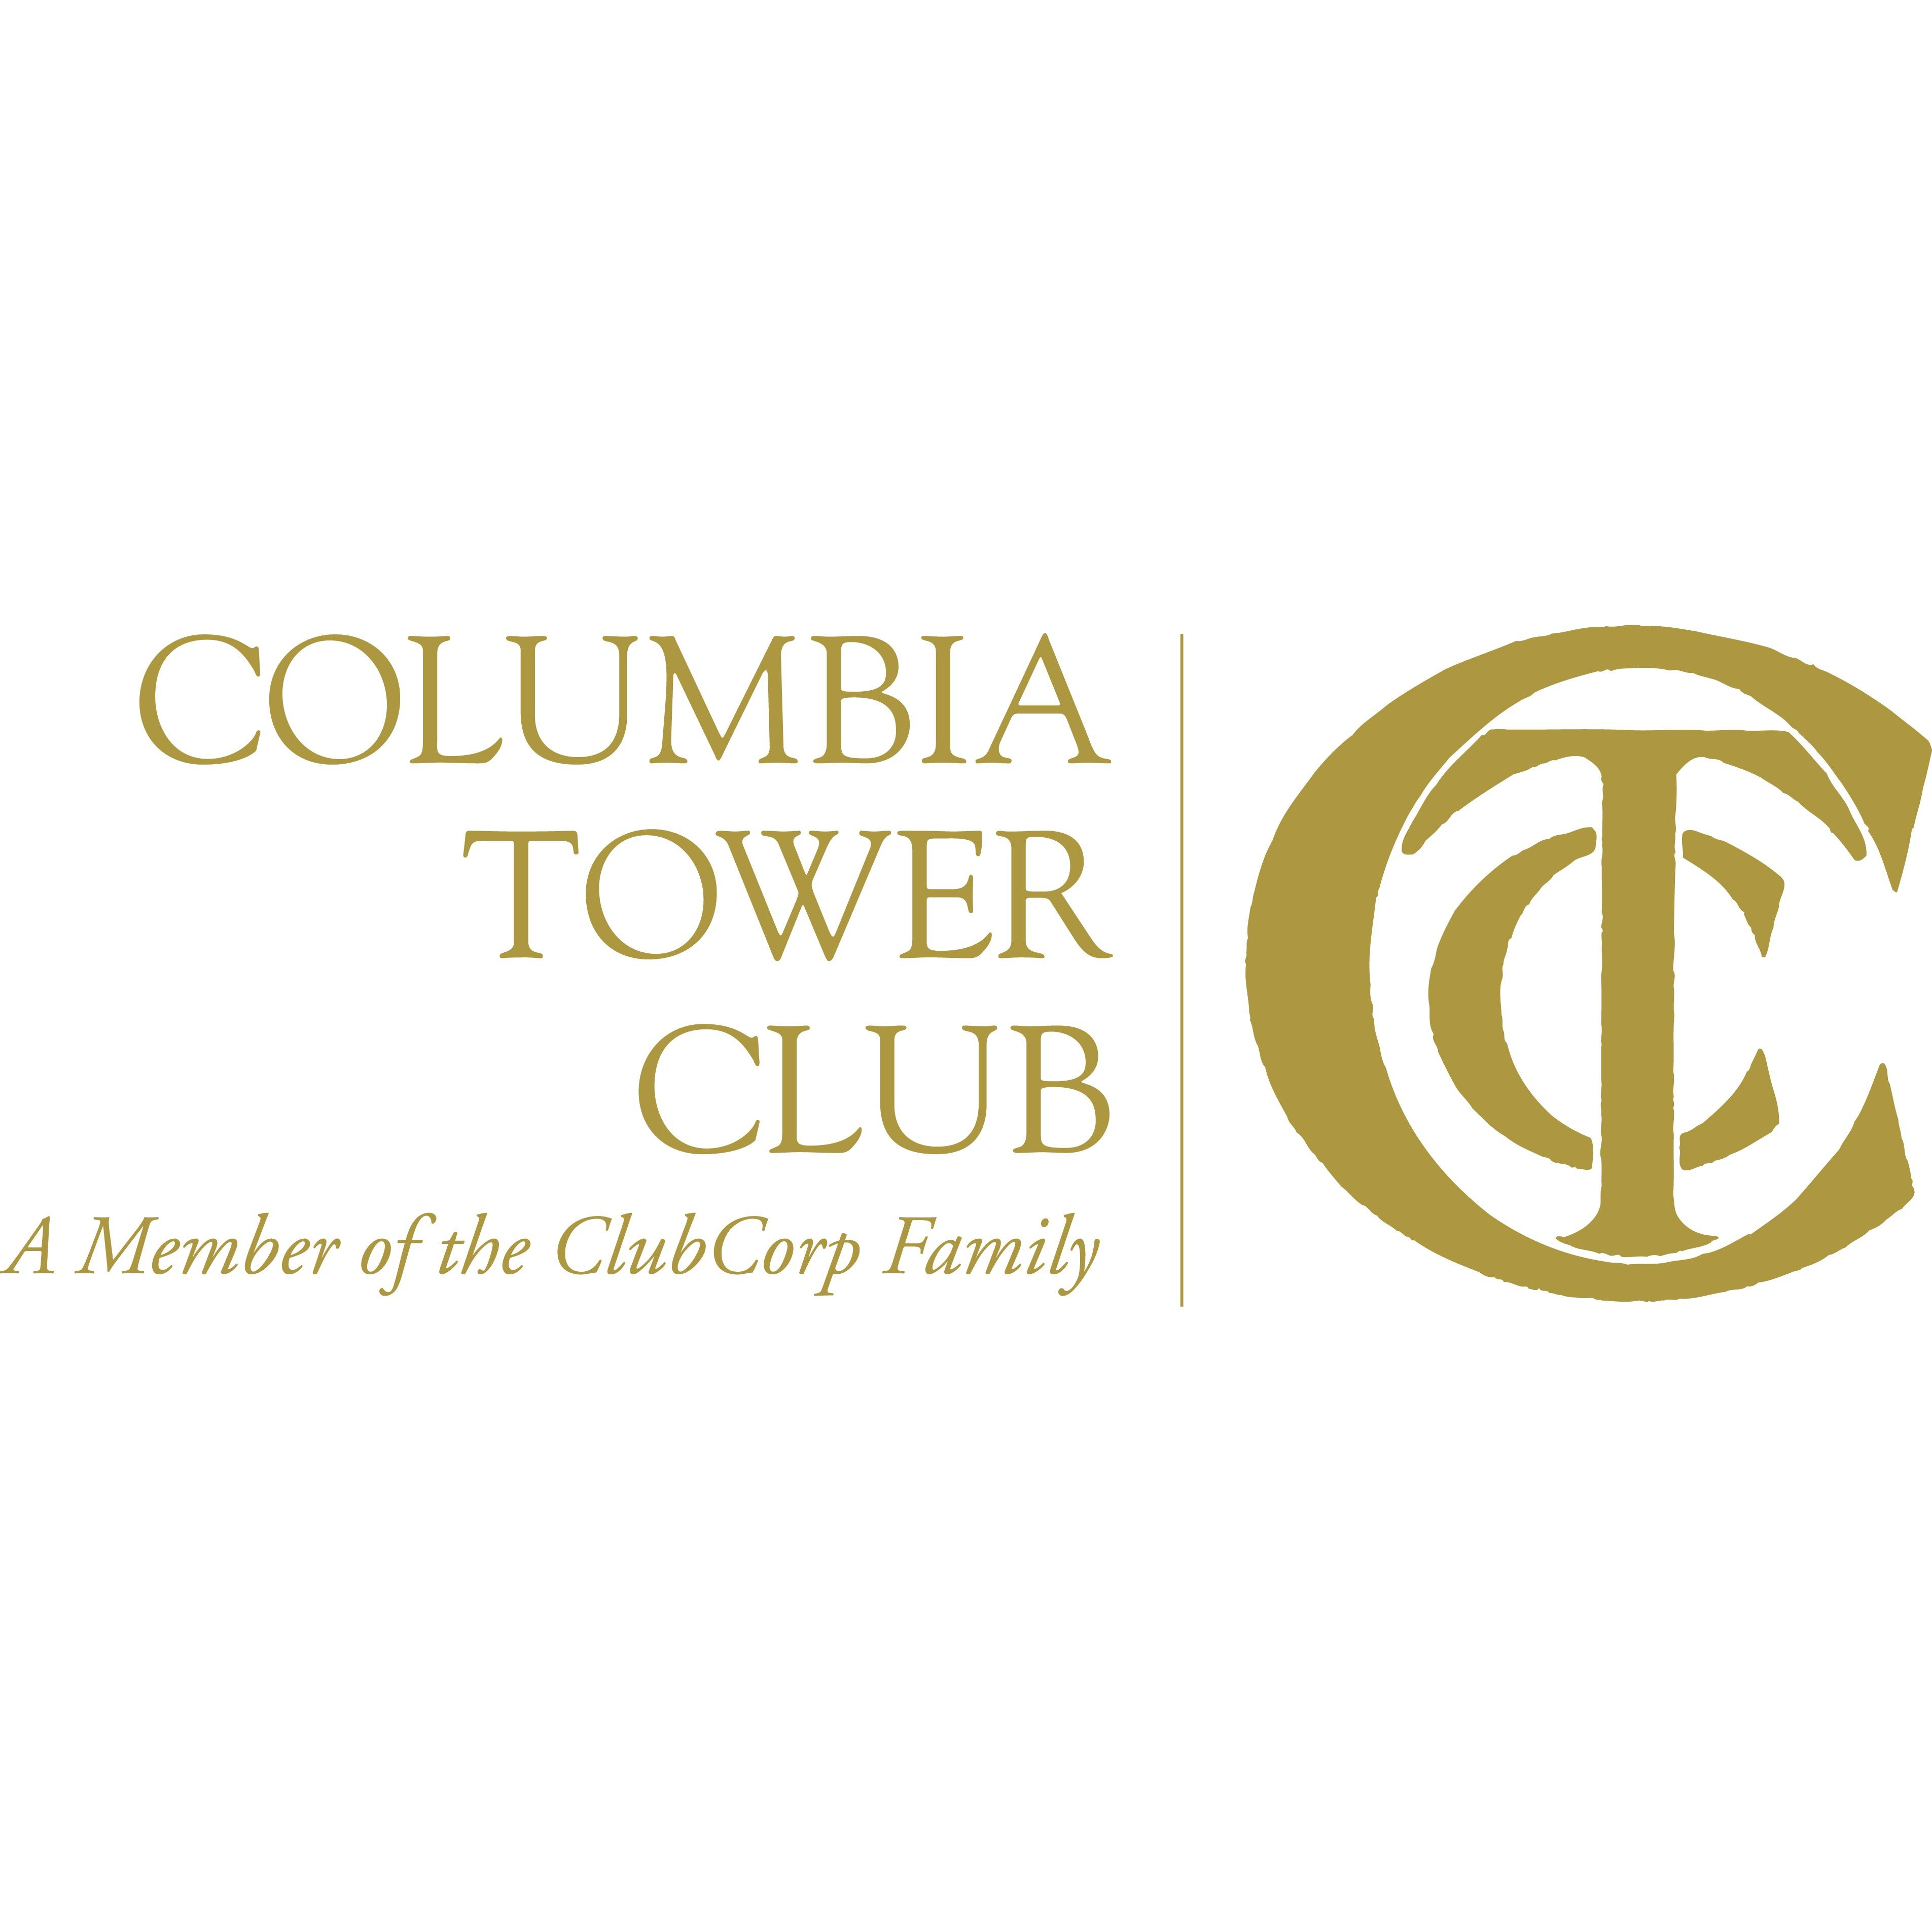 Columbia Tower Club image 6